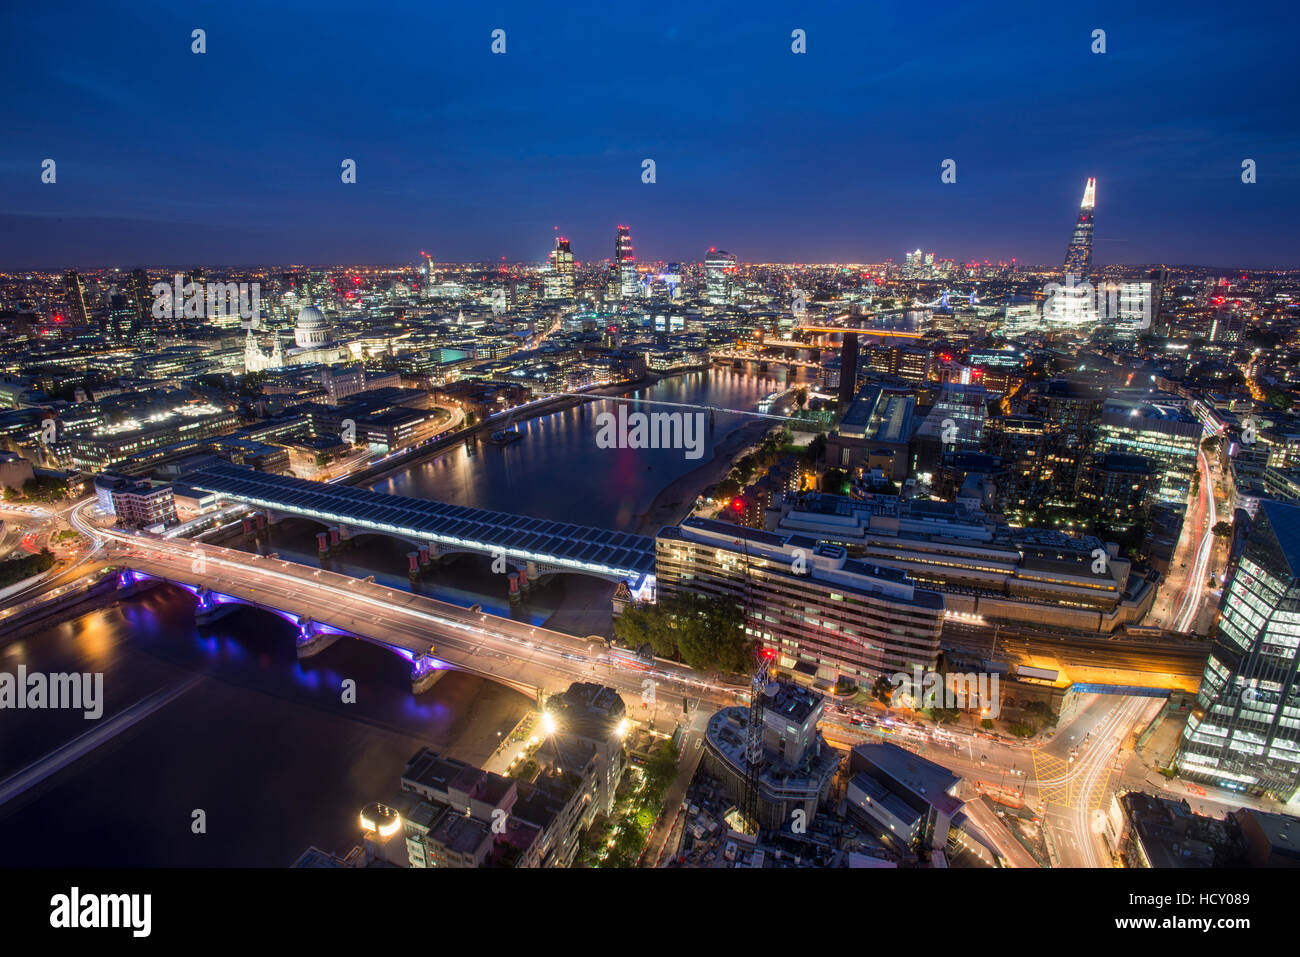 A night-time view of London and the River Thames including The Shard, St. Paul's Cathedral and Tate Modern, - Stock Image